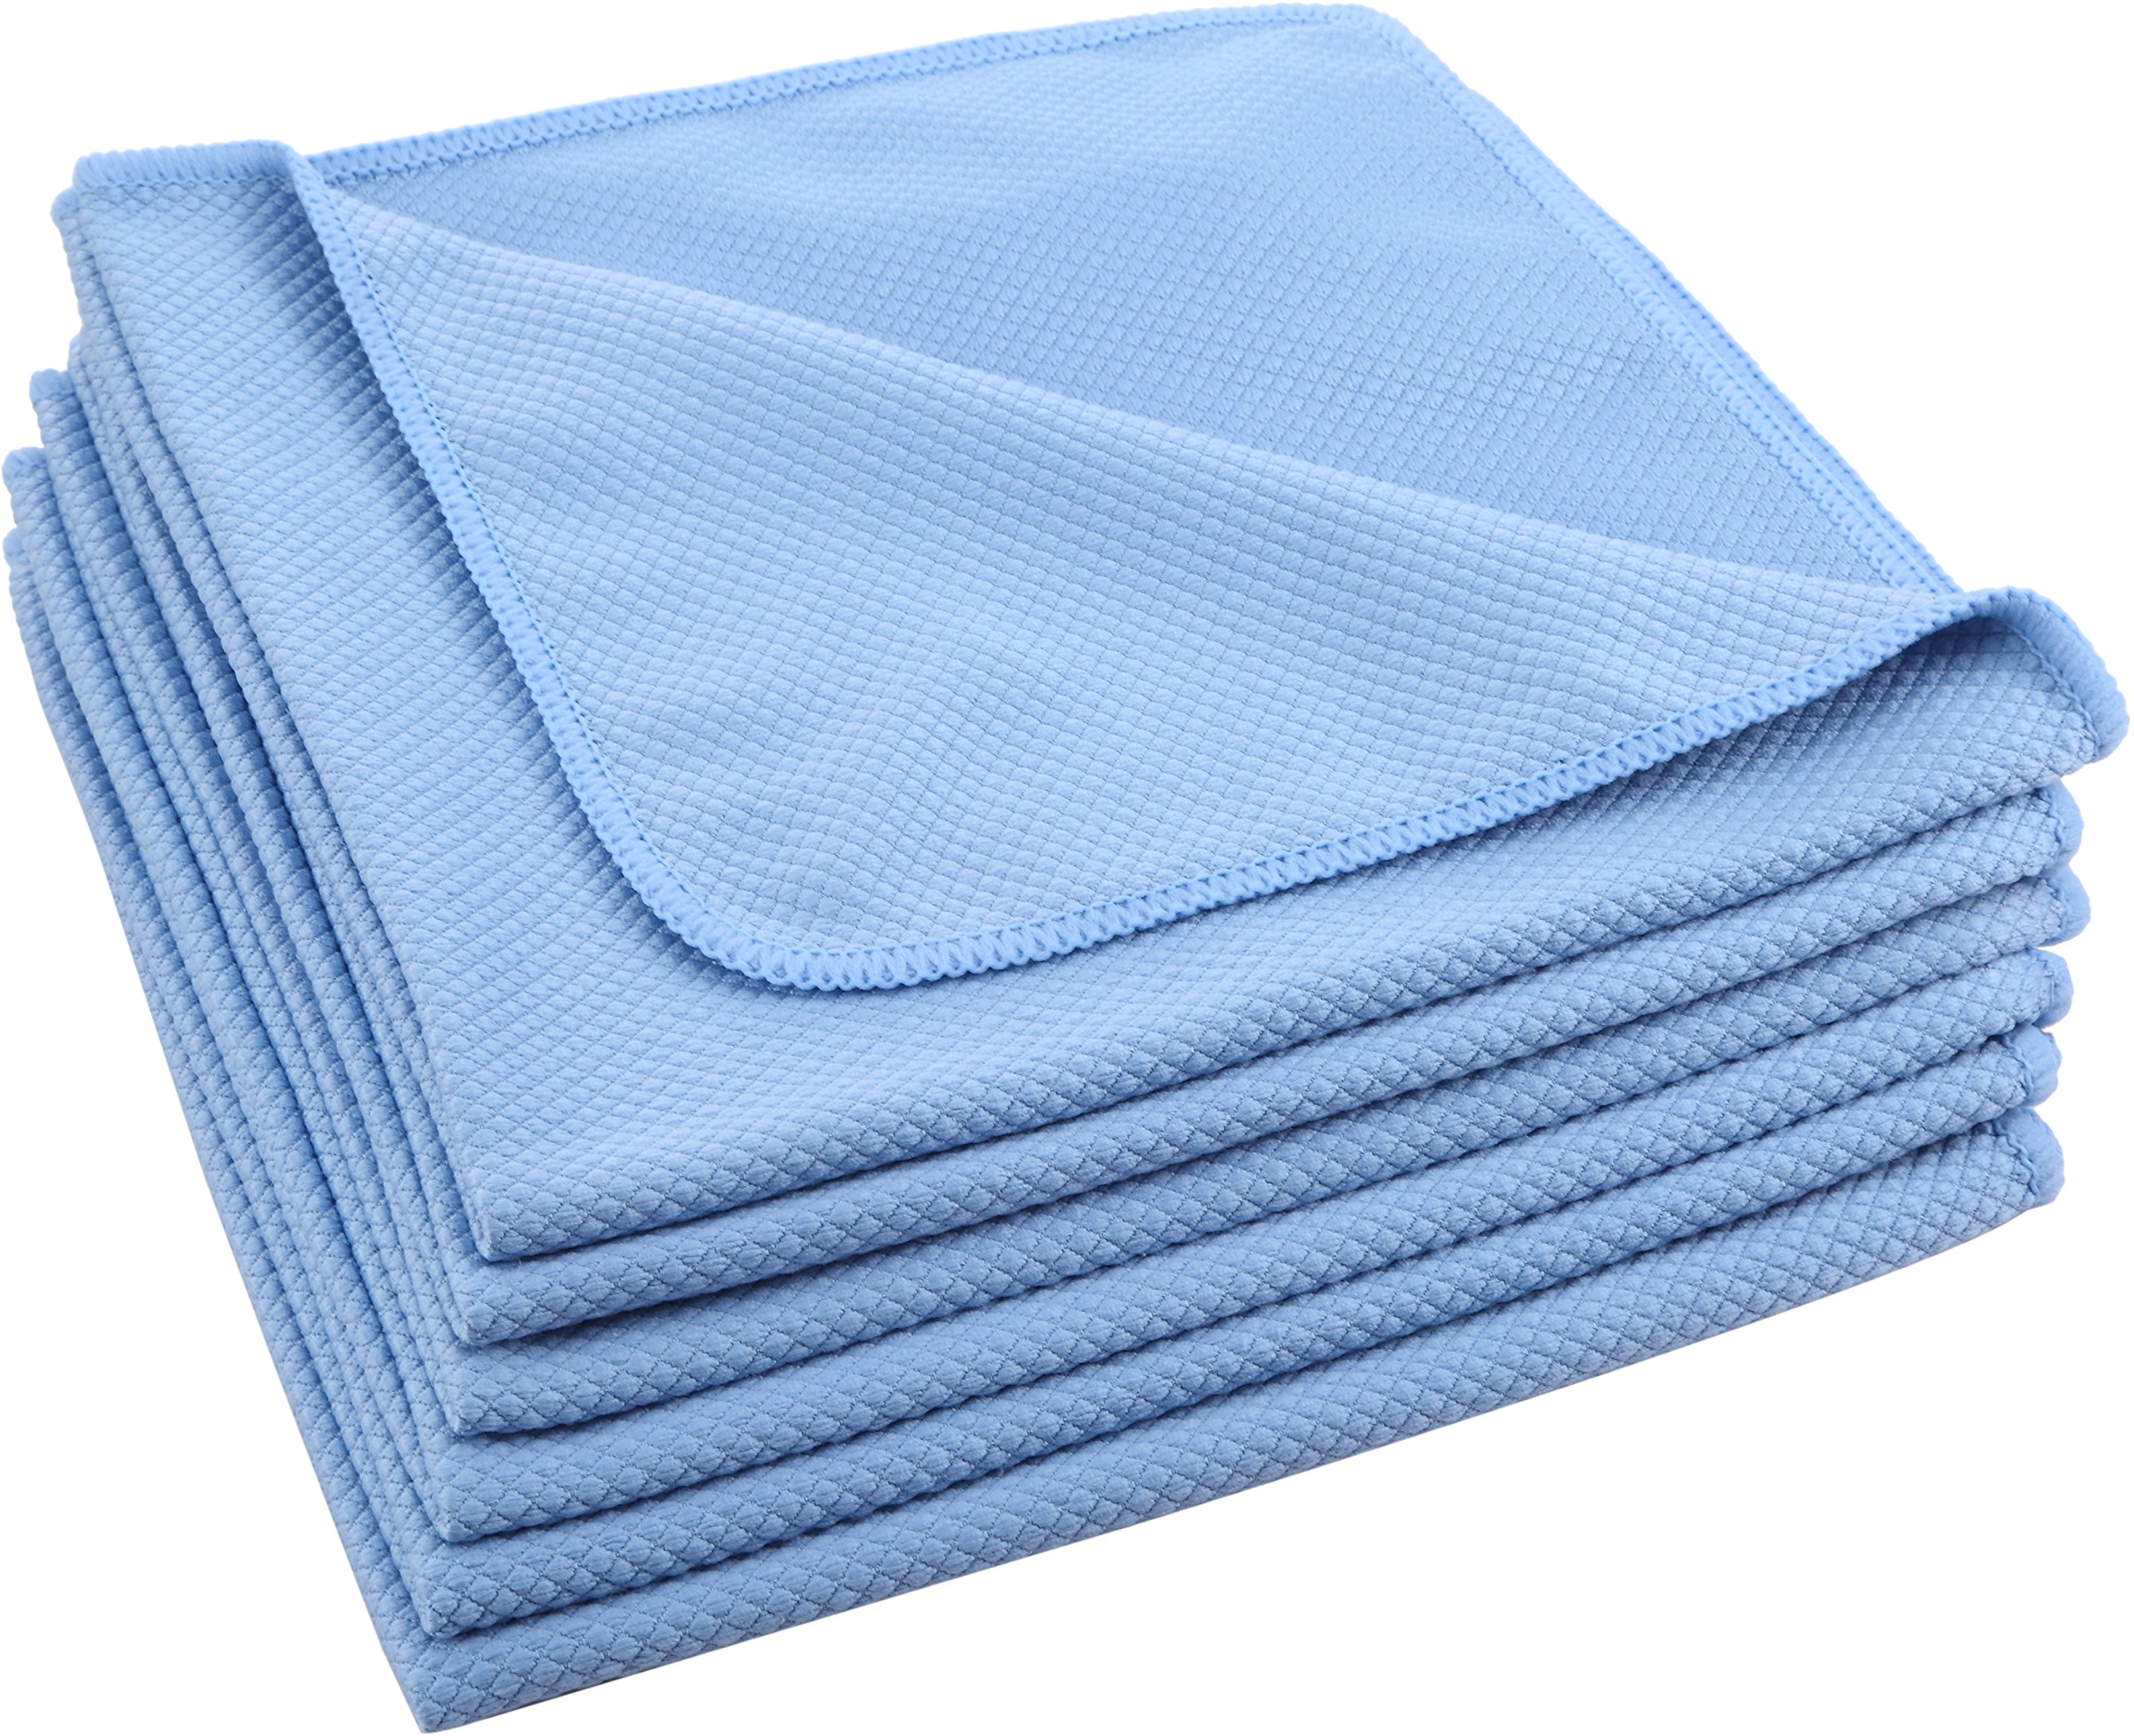 Pro Chef Kitchen Tools Microfiber Cleaning Cloth - Household Wipes And Cloths - Stainless Steel Polish For Appliances And Window Glass Cleaner - Streak Free For Bathroom Mirror - Wet Dry Towel Set 6